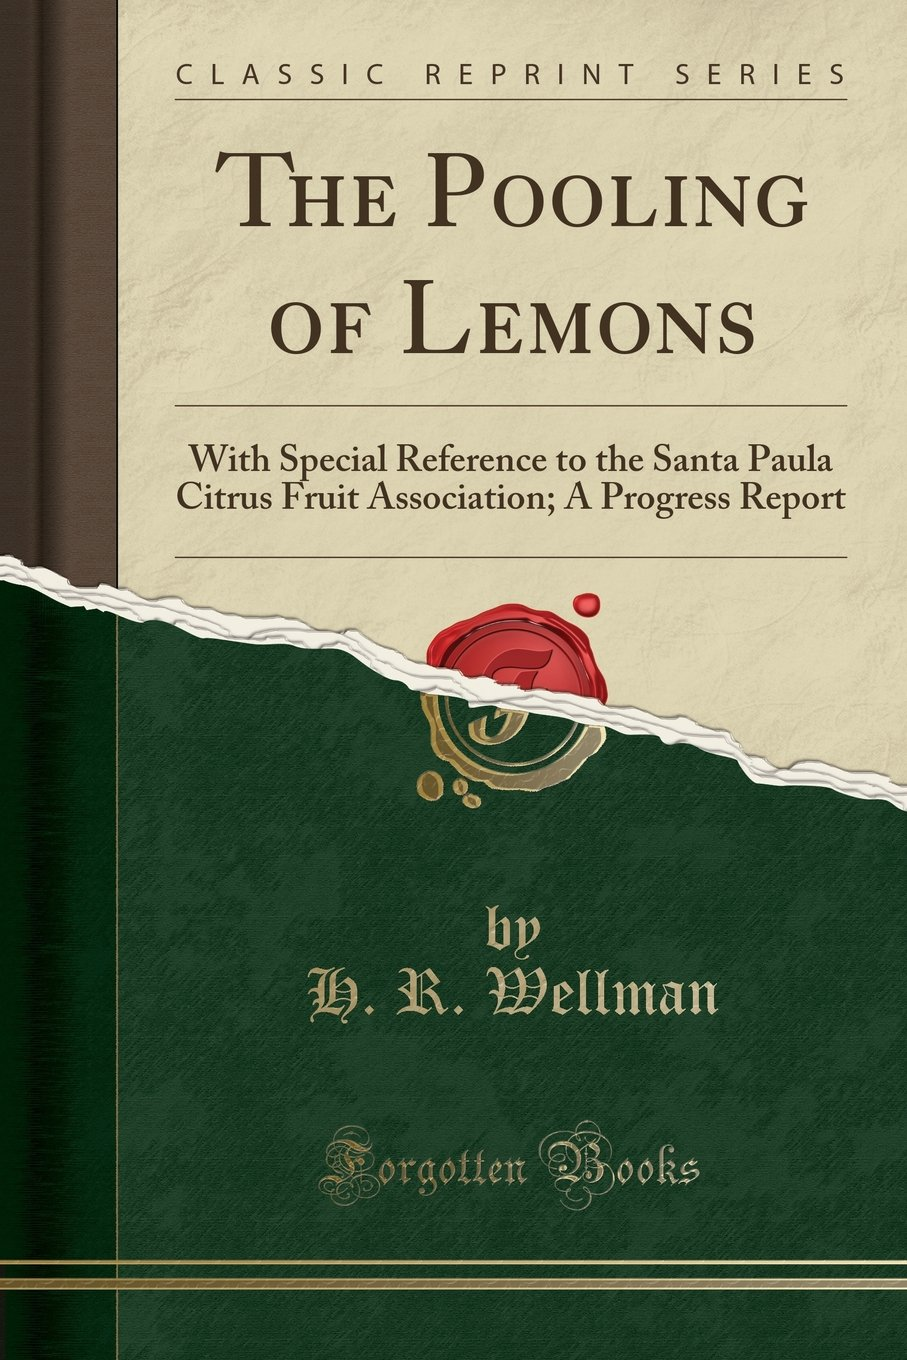 Read Online The Pooling of Lemons: With Special Reference to the Santa Paula Citrus Fruit Association; A Progress Report (Classic Reprint) PDF